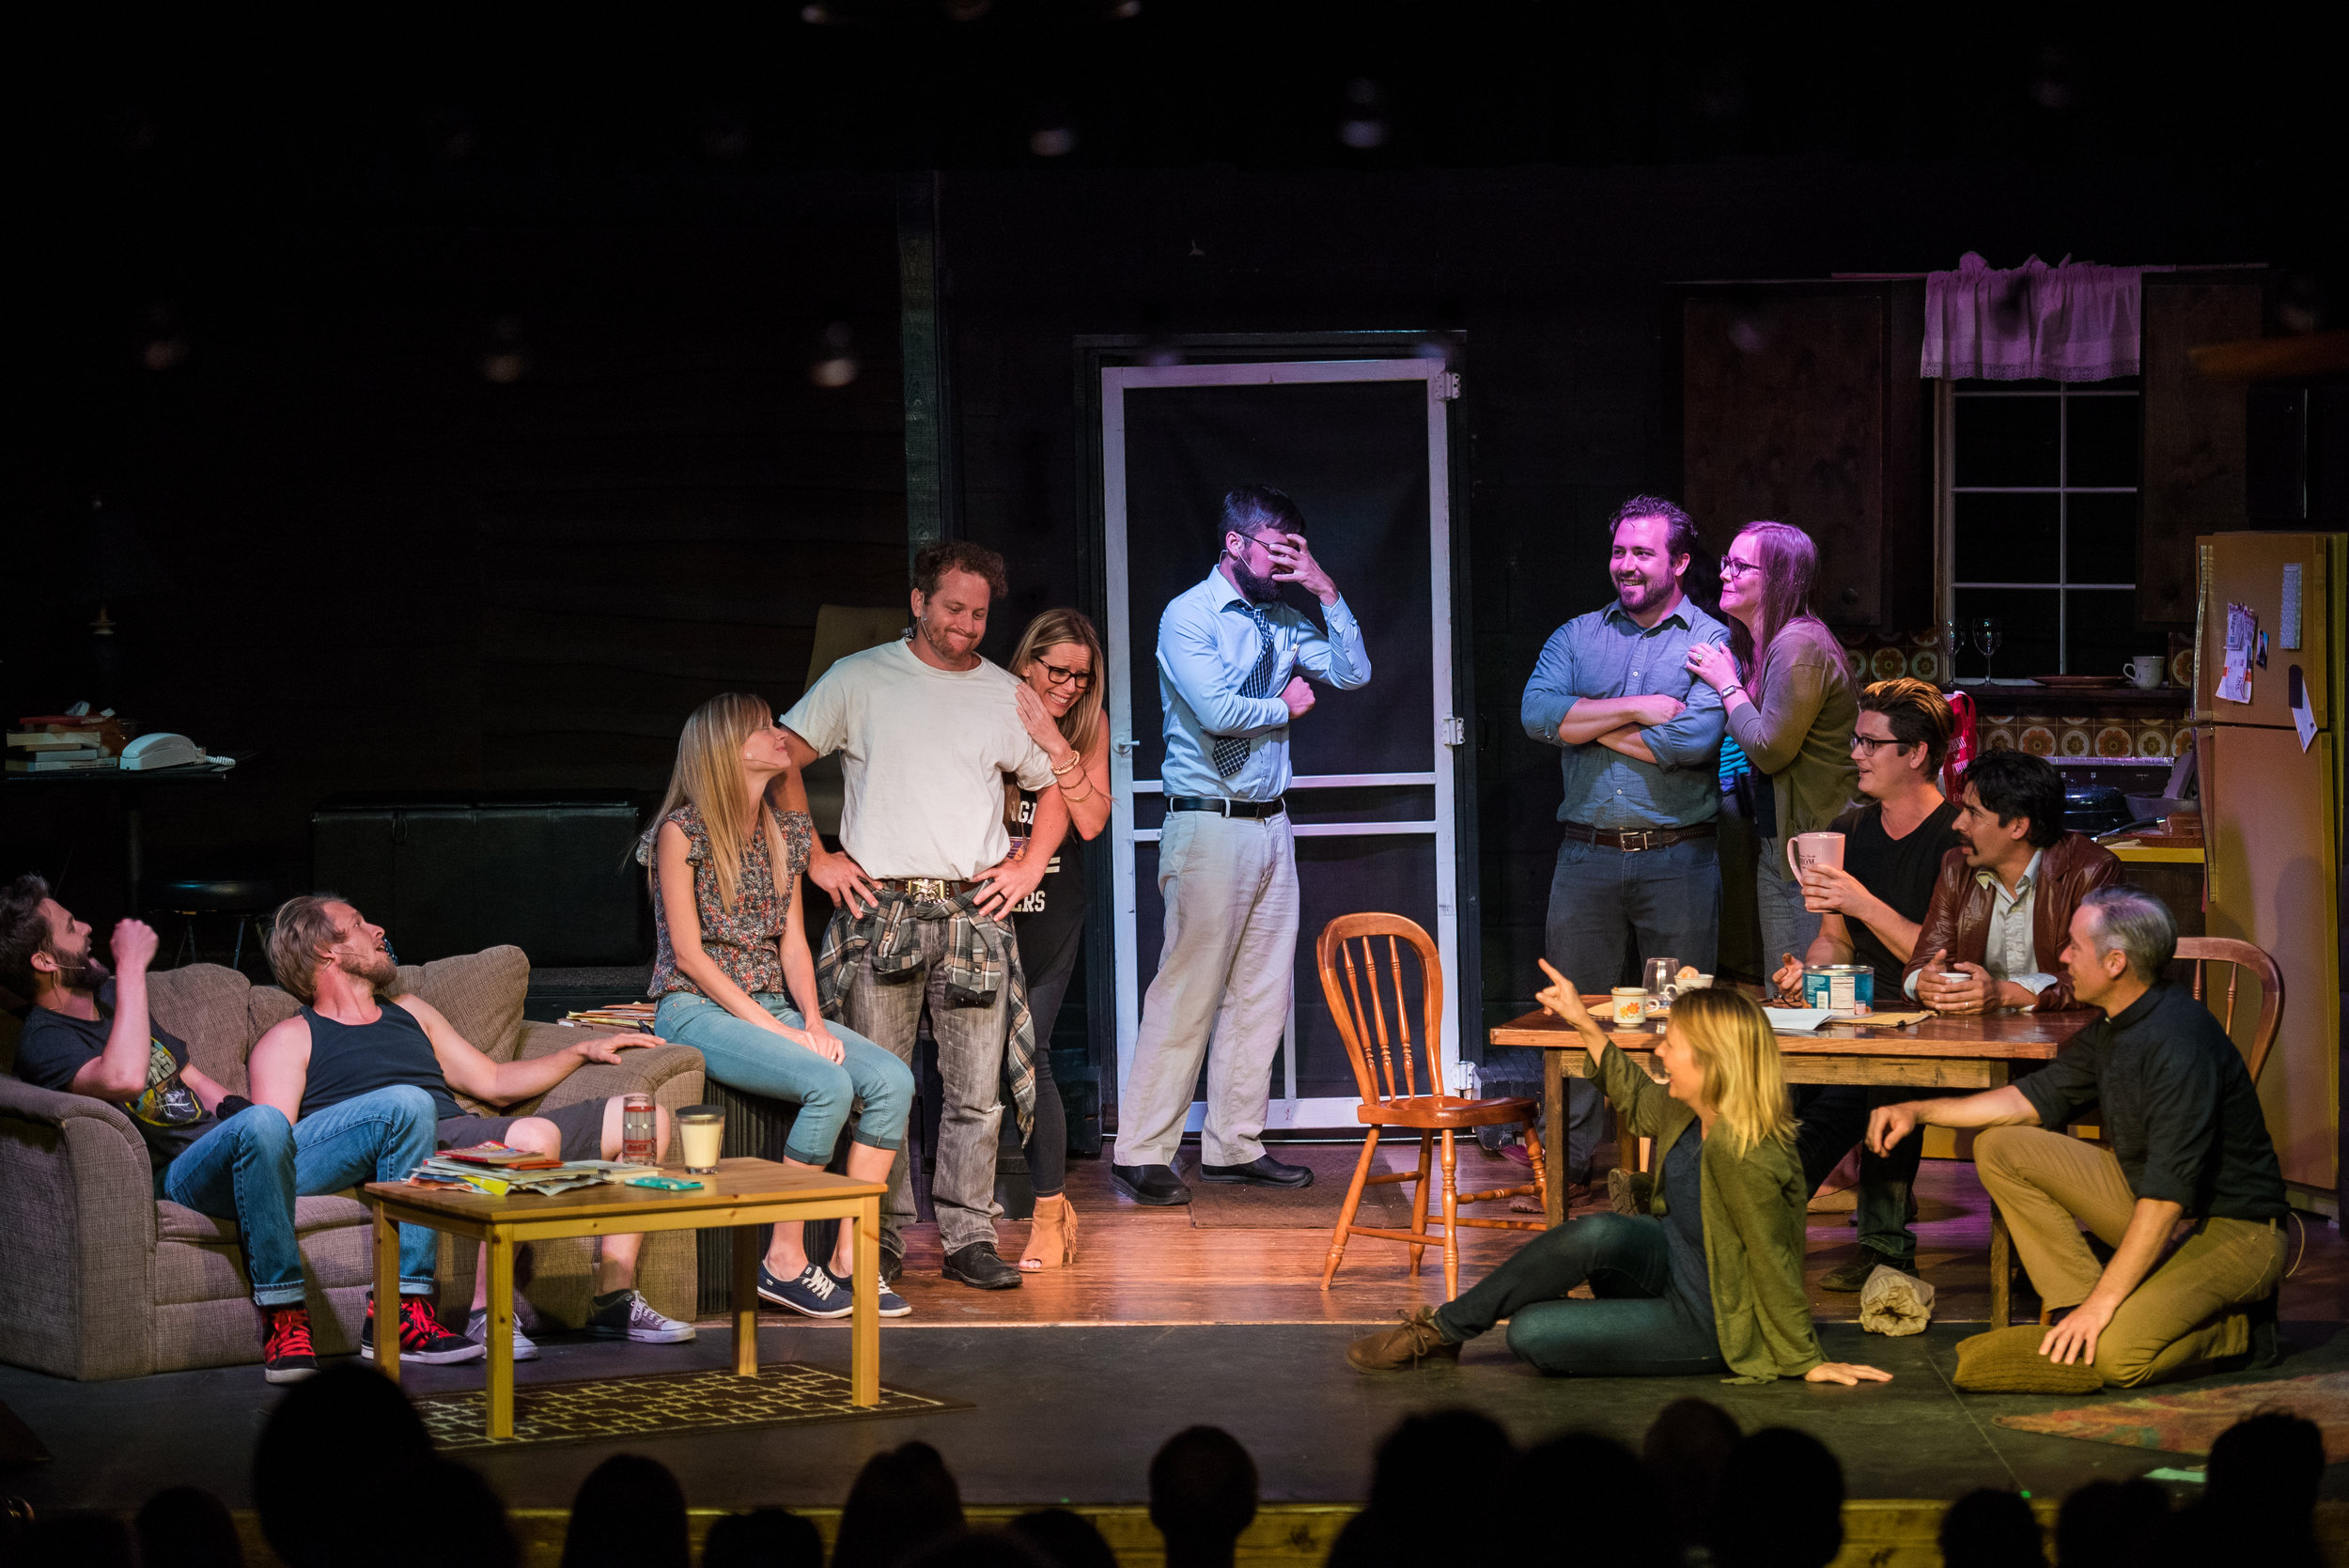 """Over the summer, the Arts at Center Street debuted  Mental, the raw, yet relatable play focused around the complex story of the Clark family.   Mental  examined """"the functional dysfunctionality of the human experience,"""" and the ways in which people choose to navigate life's turbulence."""